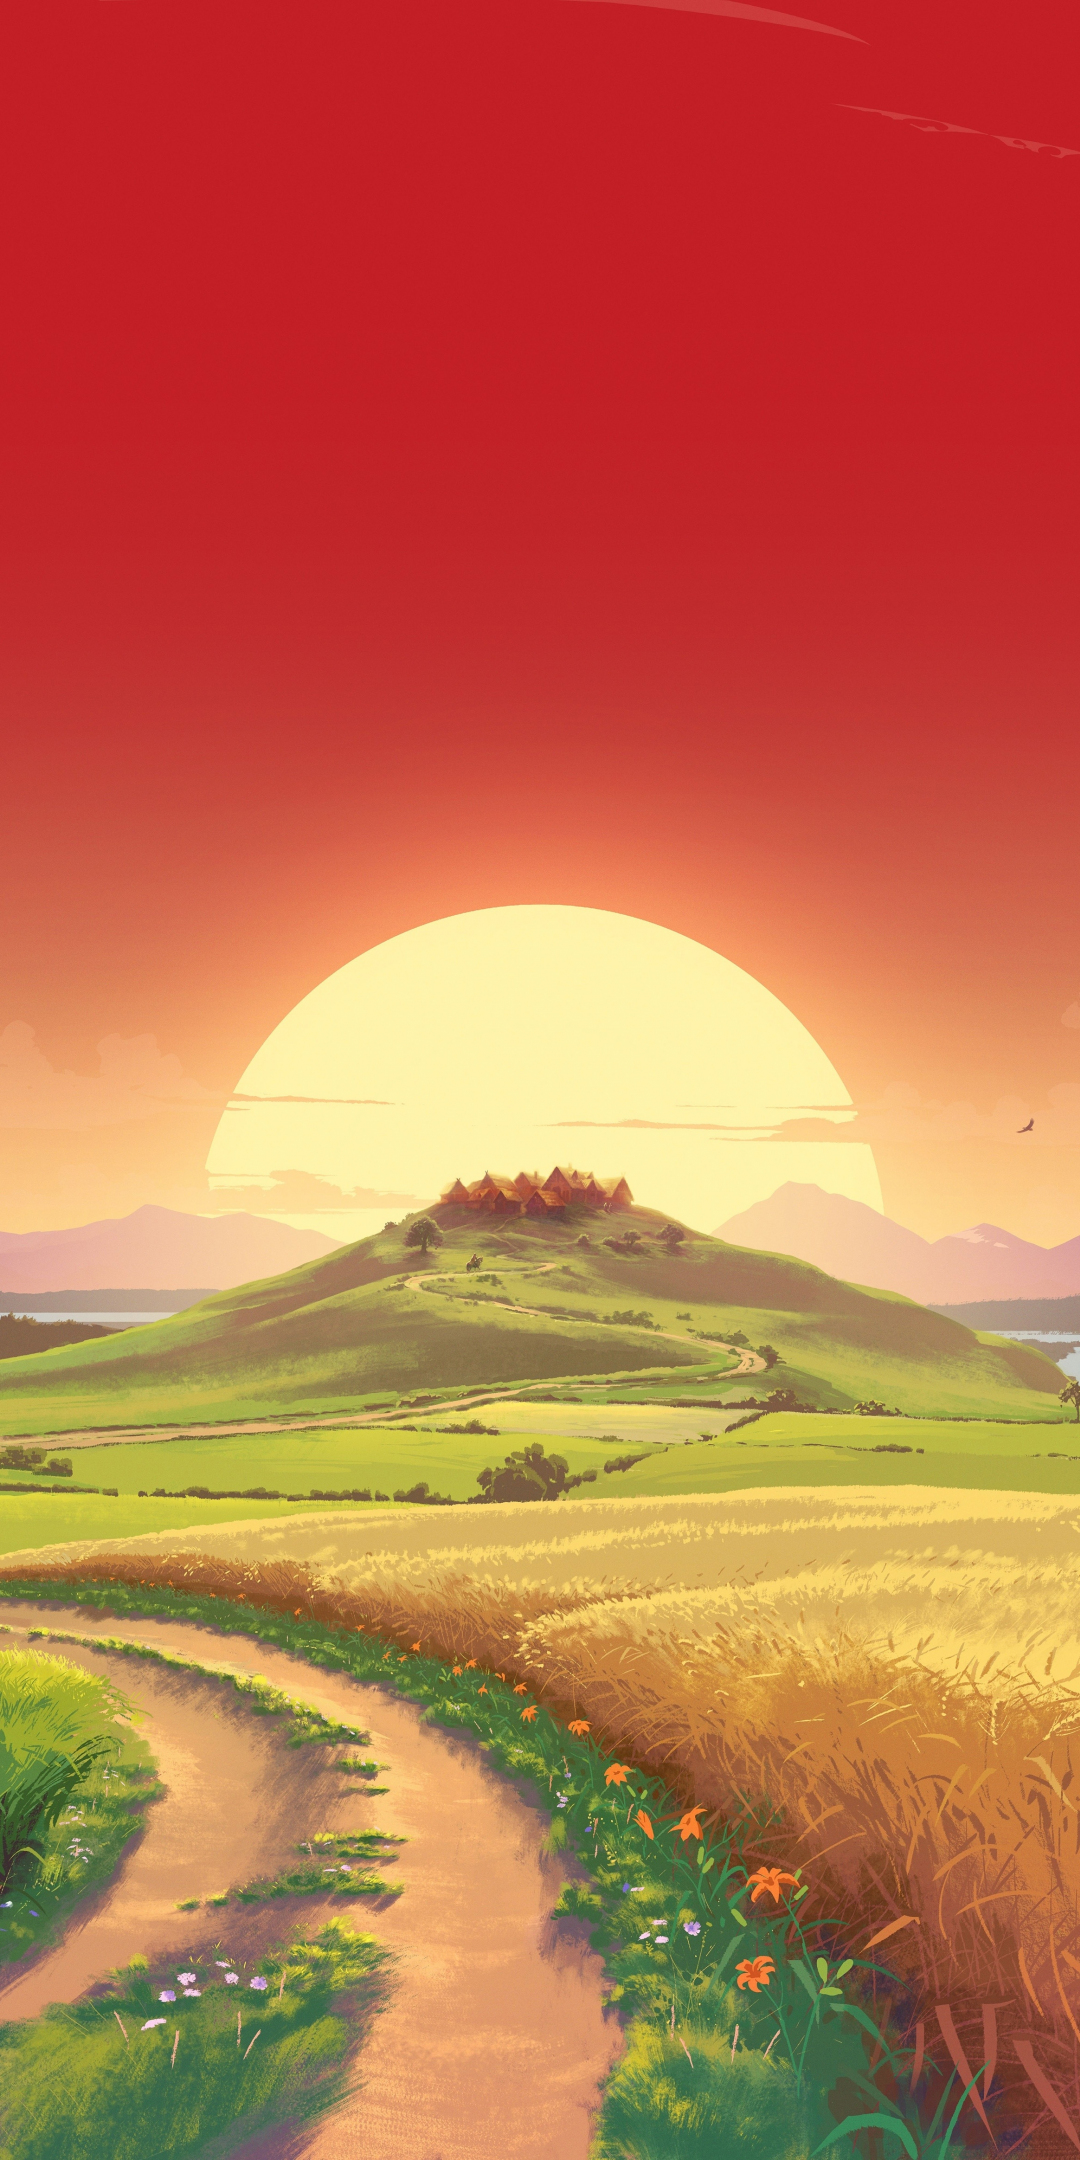 Download 1080x2160 Wallpaper Landscape Sunset Orange Sky Pathway Art Honor 7x Honor 9 Lite Honor View 10 Hd Image Background 16056